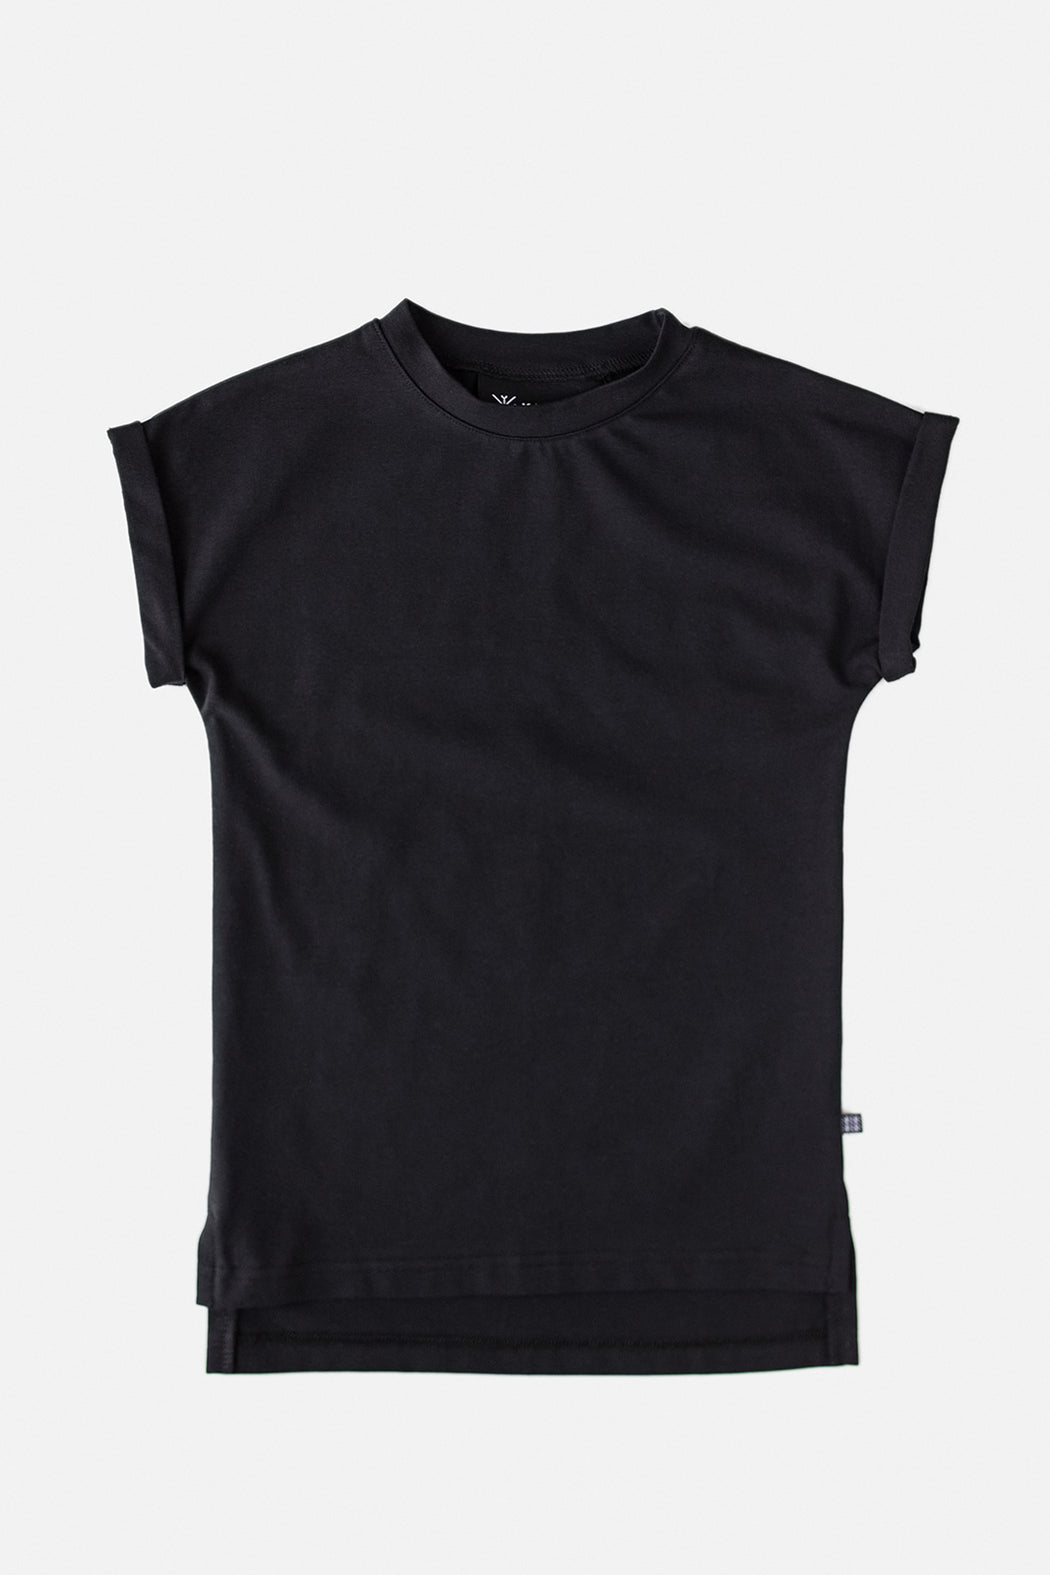 Drop shoulder t-shirt, musta